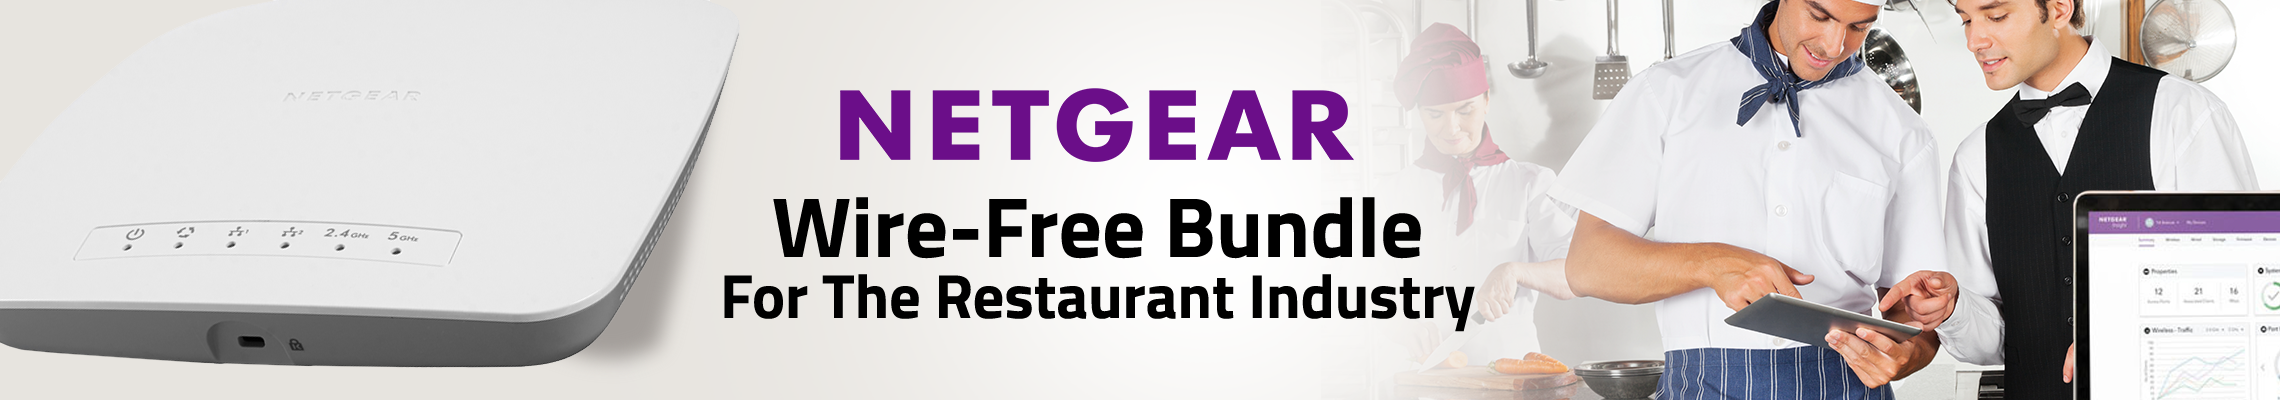 NETGEAR Wire-Free Bundle For The Restaurant Industry